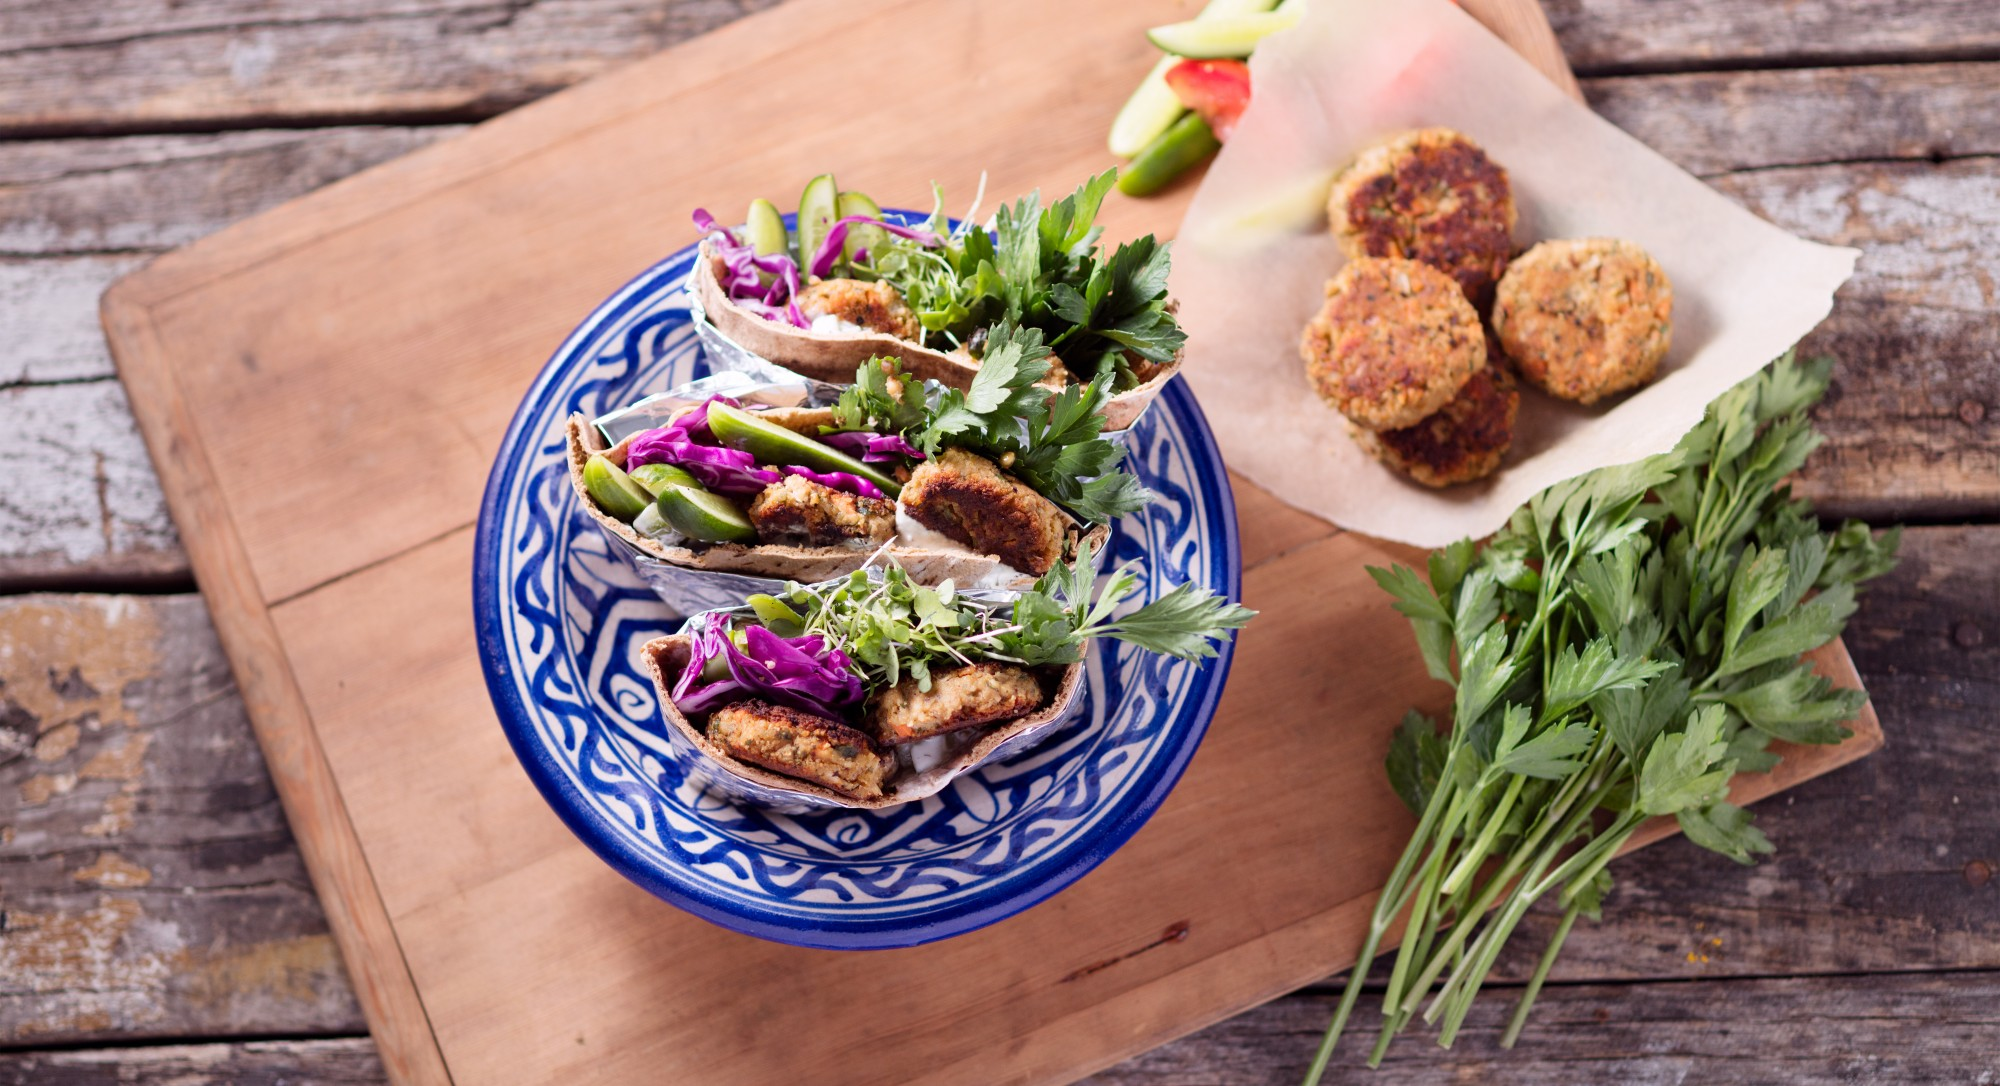 Make Your Own Pita Sandwich With These Vegan Chickpea Patties